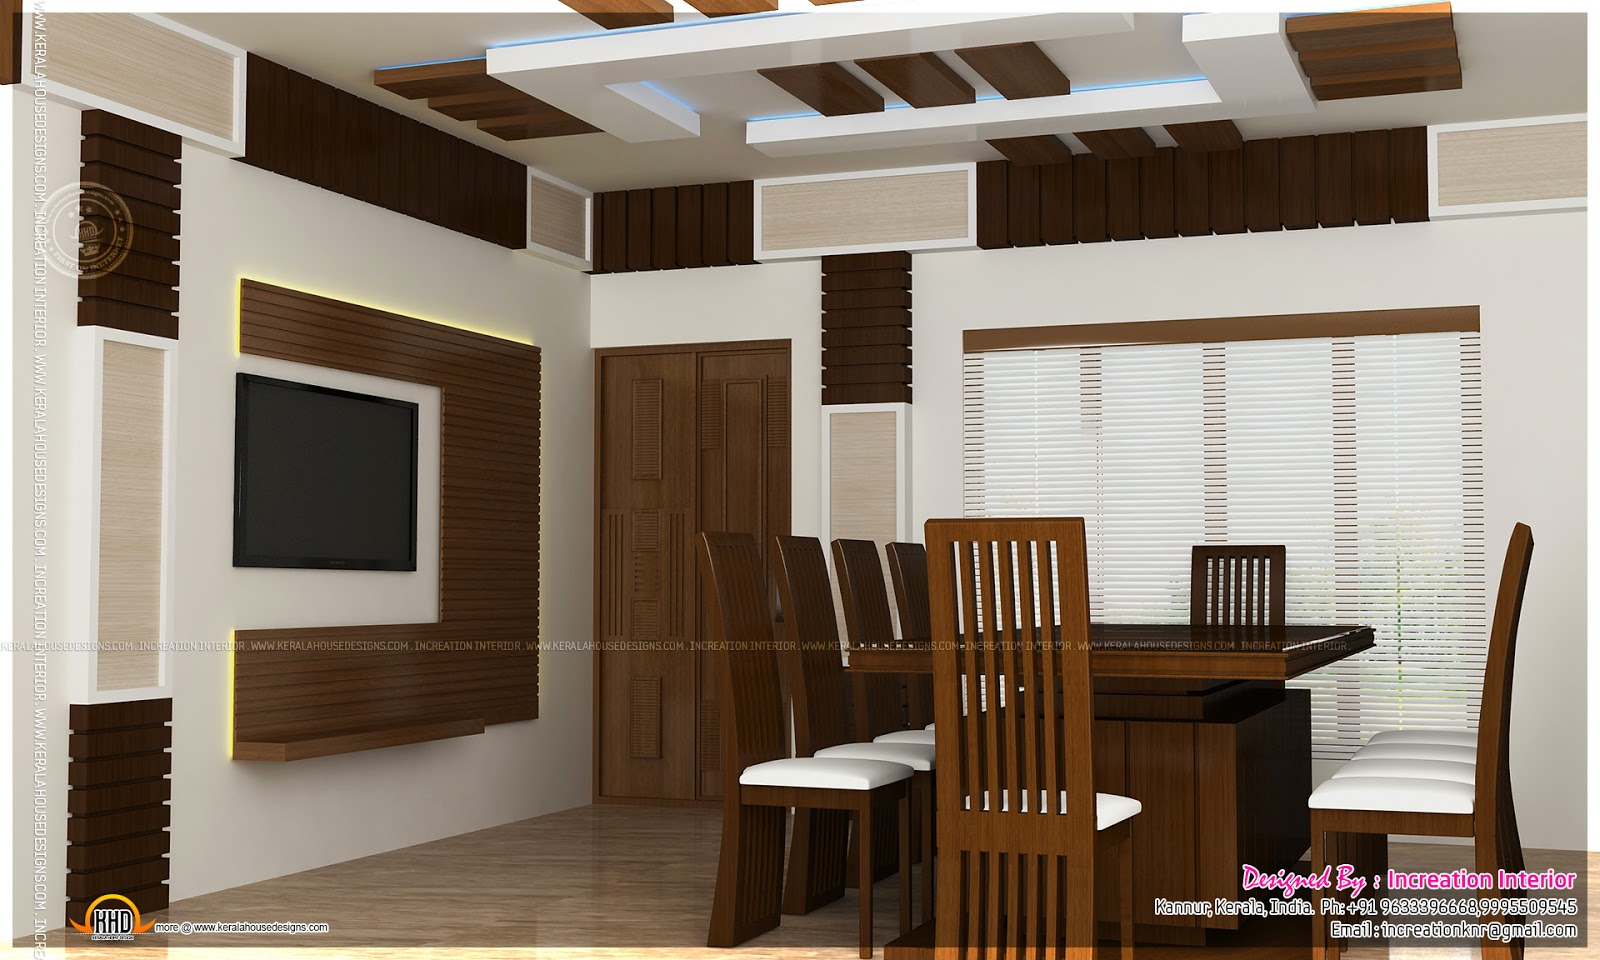 Interior design ideas by increation interior kerala for Dining room ideas kerala